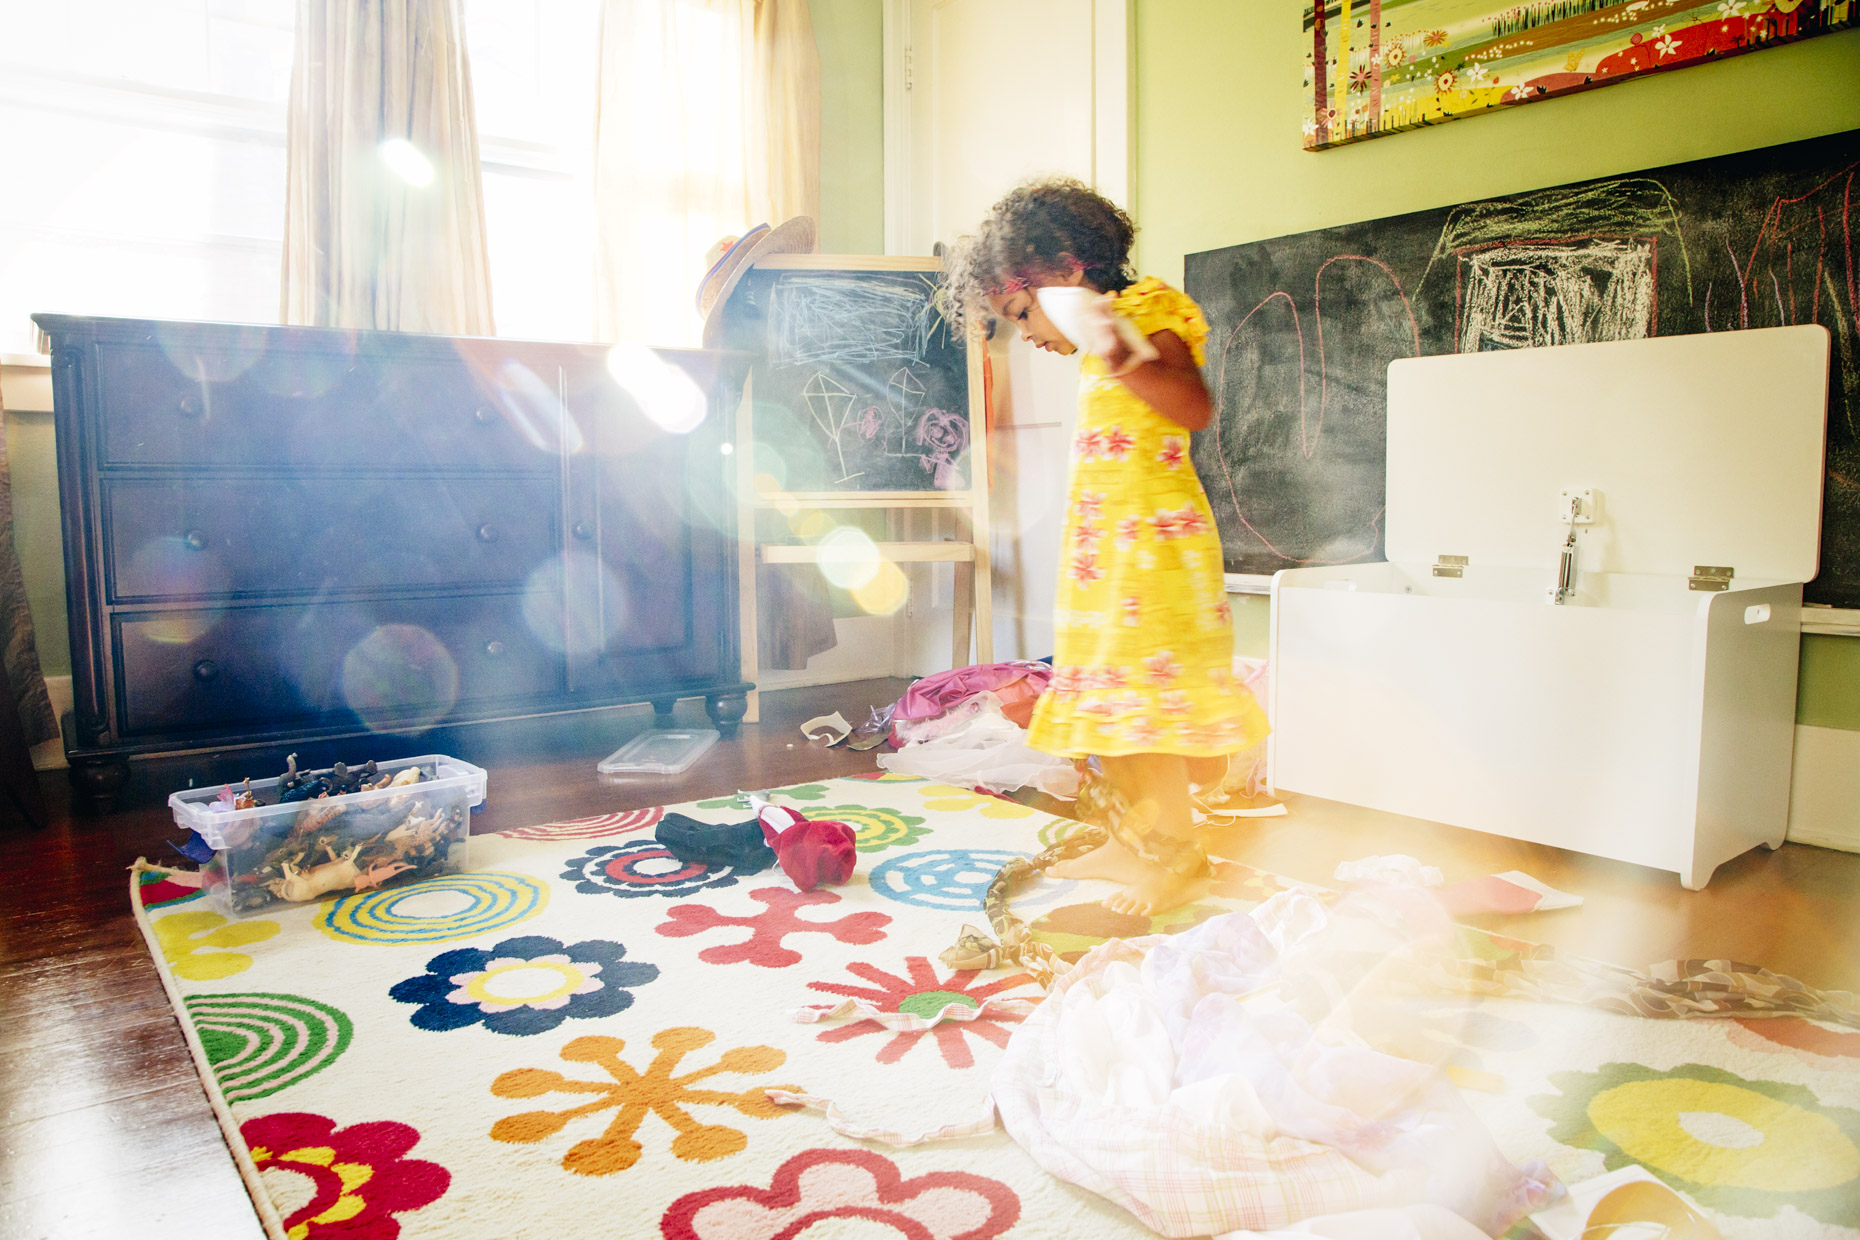 Girl playing dress-up in sunlight filled bedroom, Portland, OR, Inti St. Clair